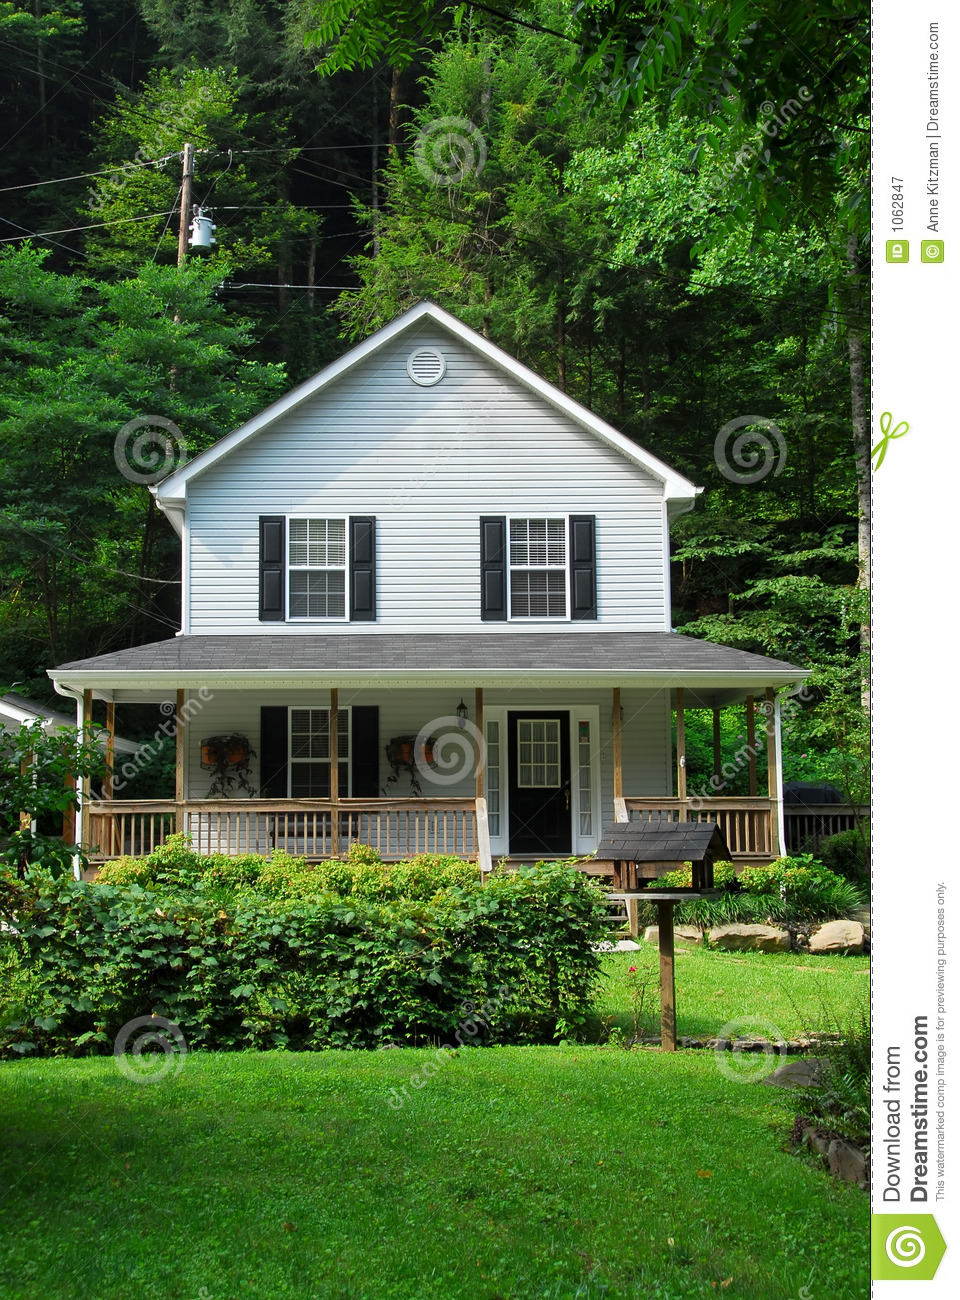 Country house royalty free stock photography image 1062847 for Country house online